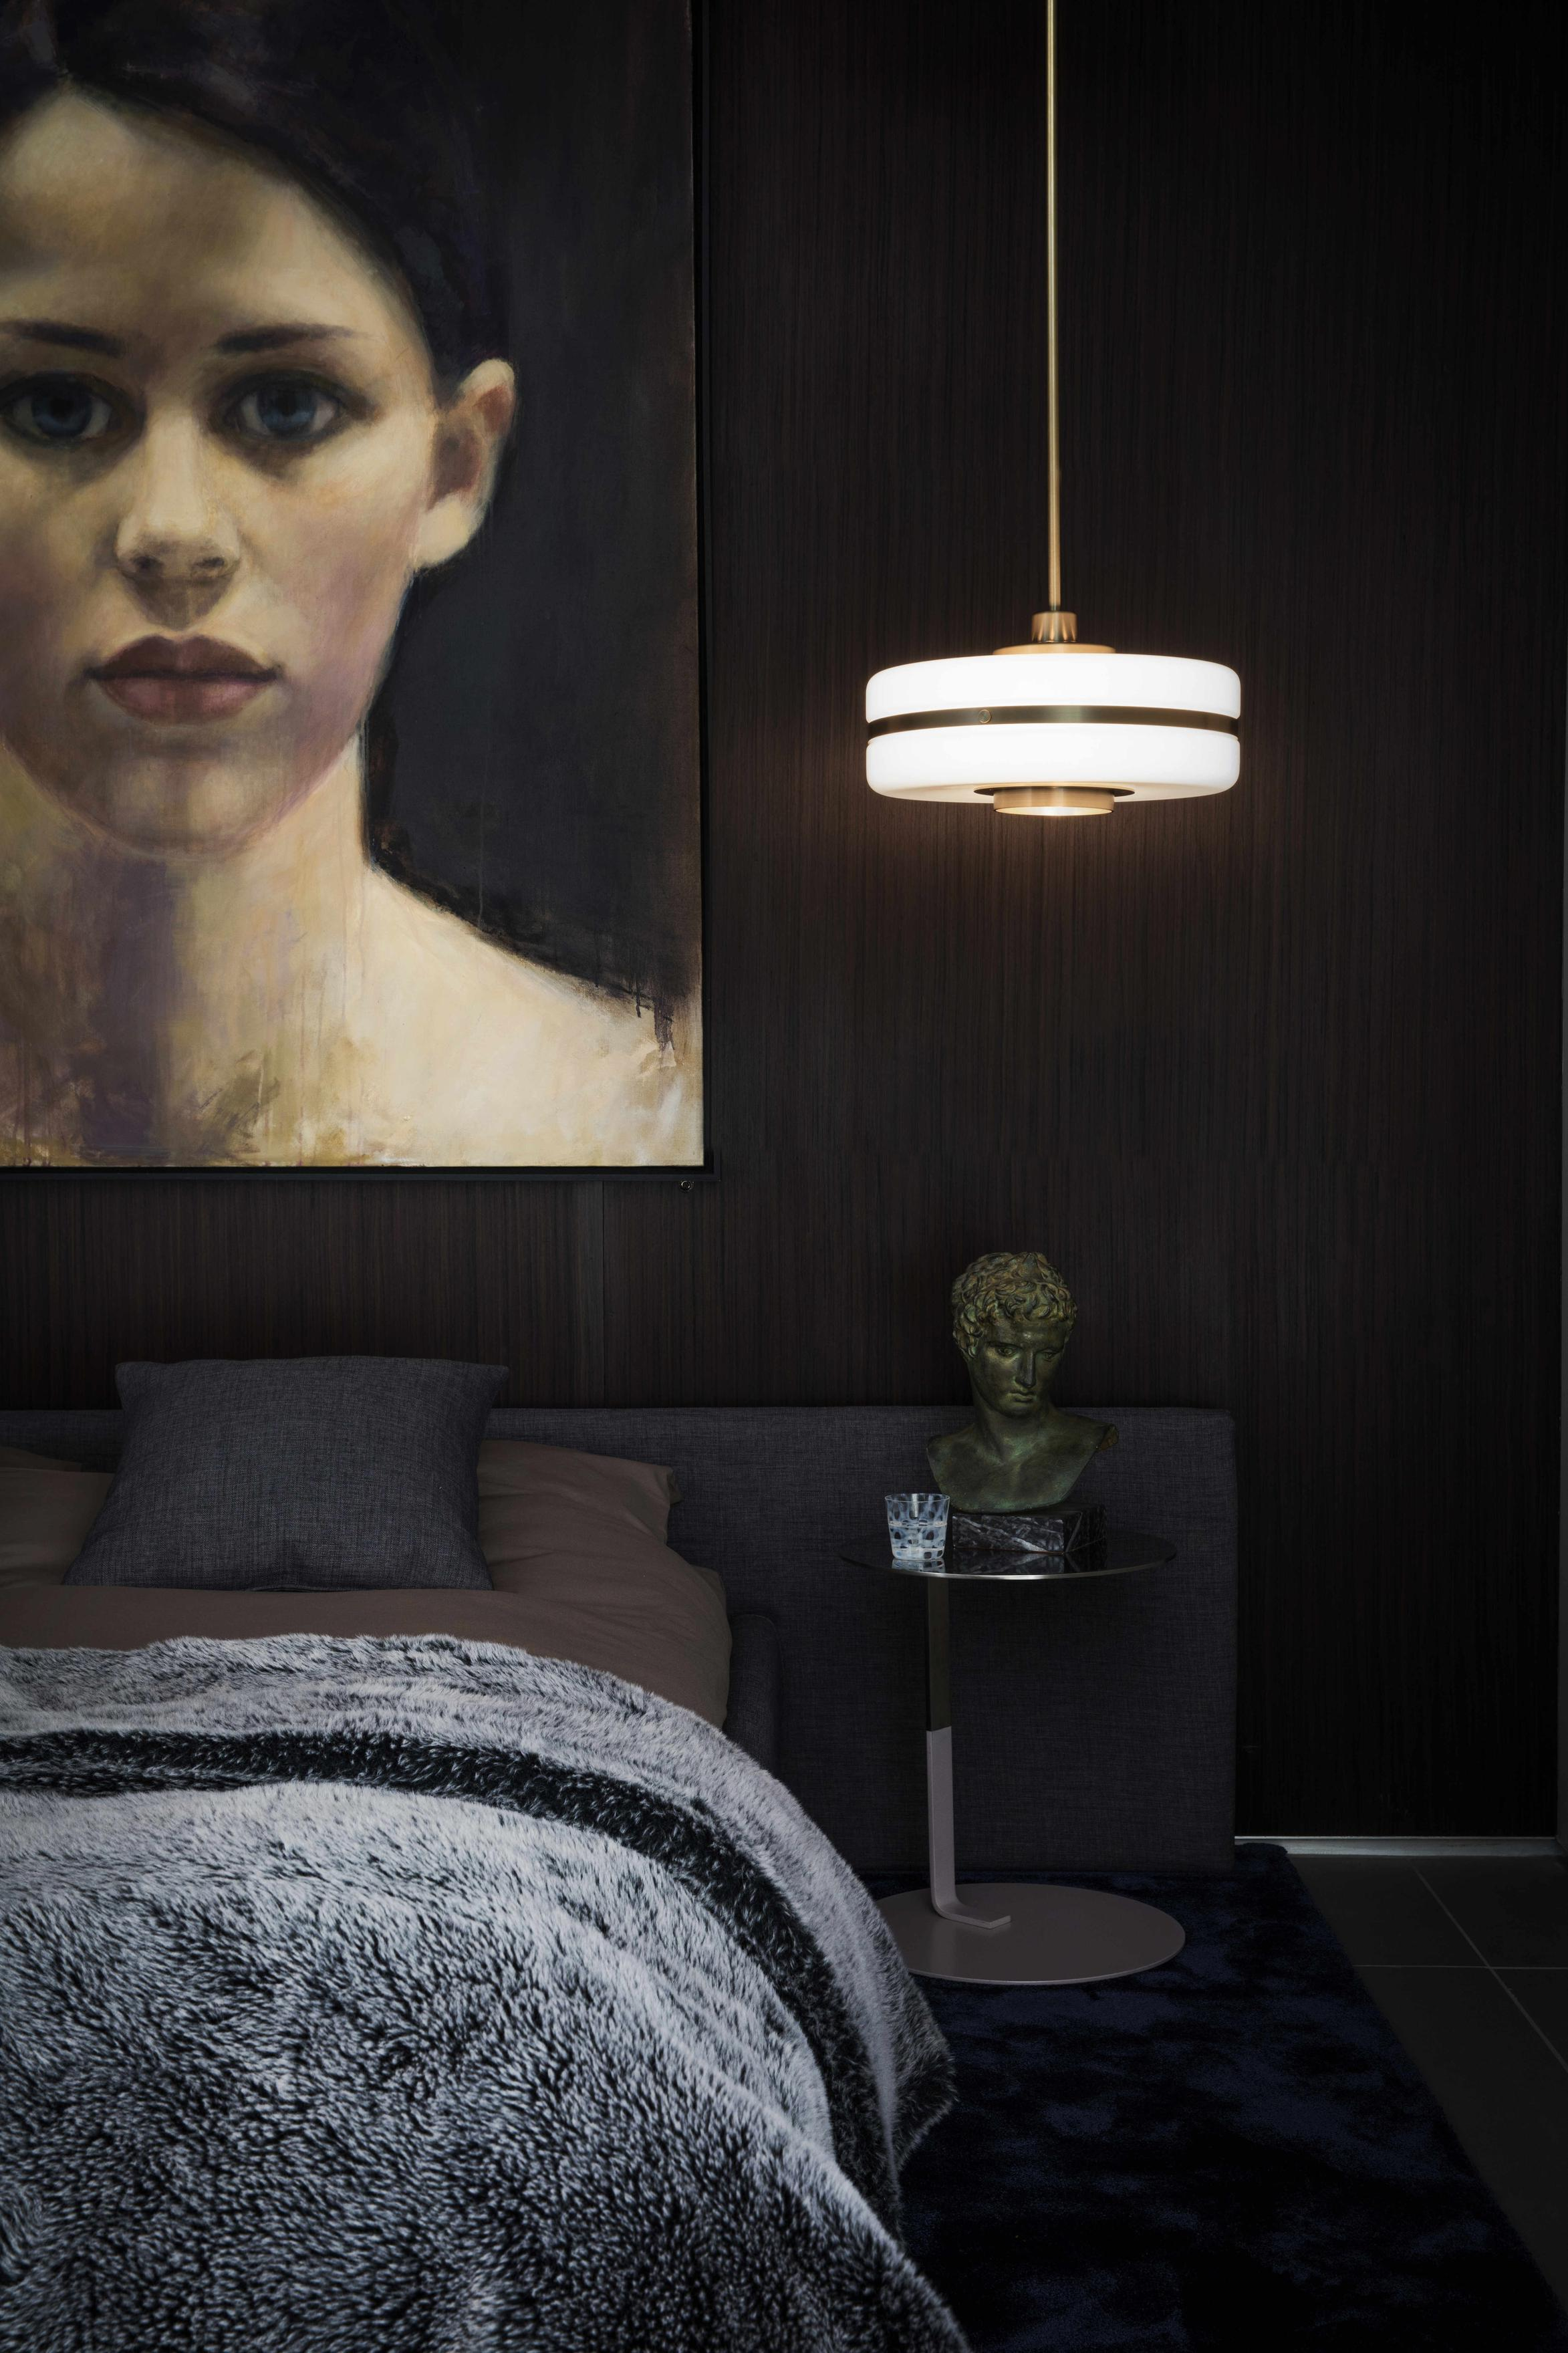 Masina Pendant Lamp - <p><span>Classically chic, the Masina Pendant Lamp features gleaming machined brass detailing and a large opal glass shade. Perfectly positioned in a central living area or over a bedside table, it will inject a sophisticated feel to any space. </p> <p></span></p>  | Matter of Stuff